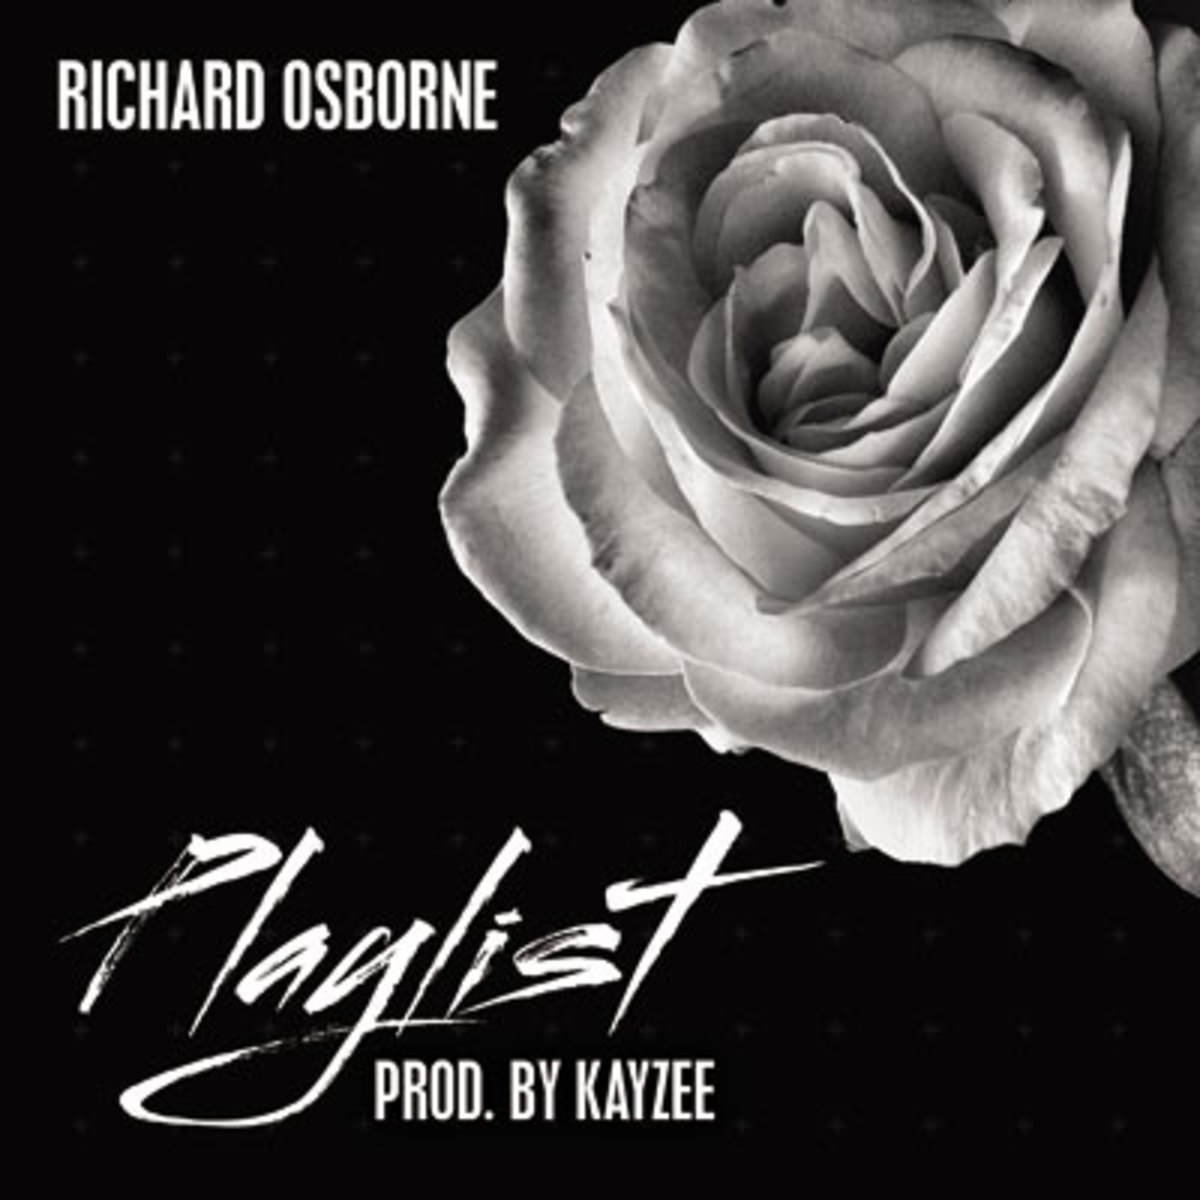 richardosborne-playlist.jpg